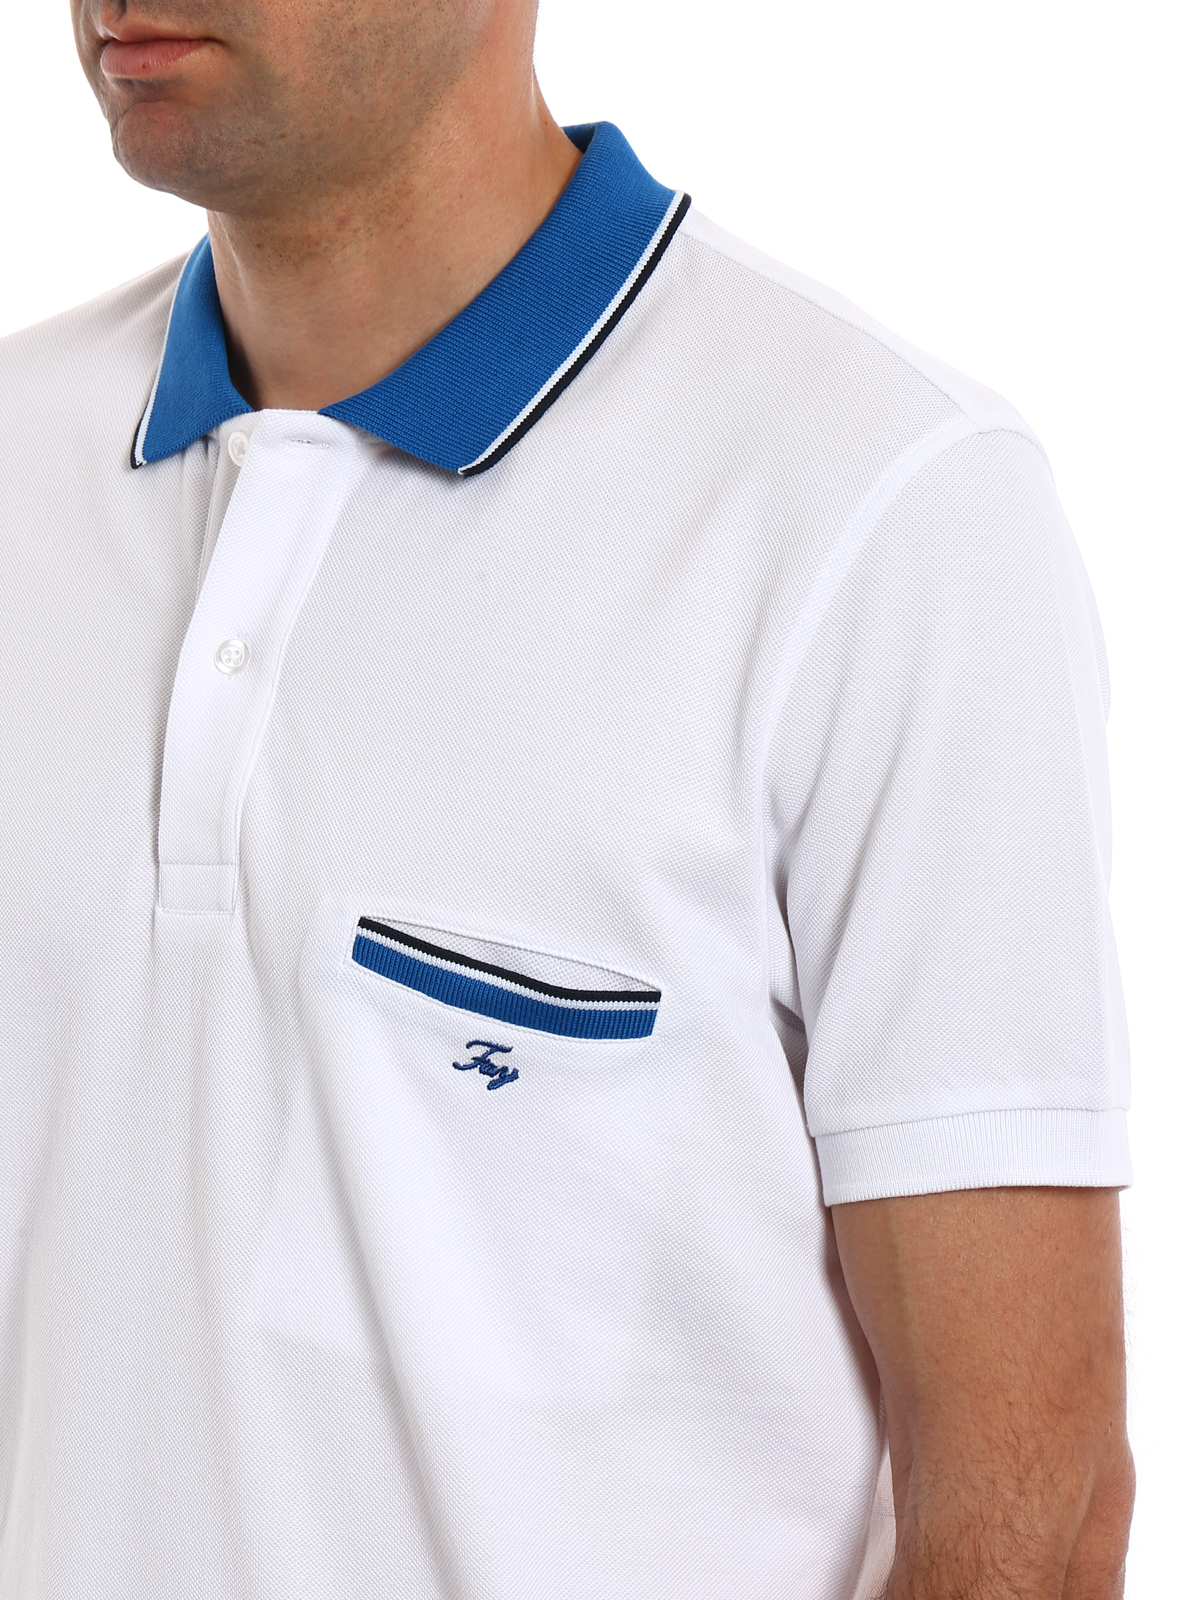 20cfc644 Fay - White polo shirt with pocket - polo shirts - NPMB2361510HPAB001